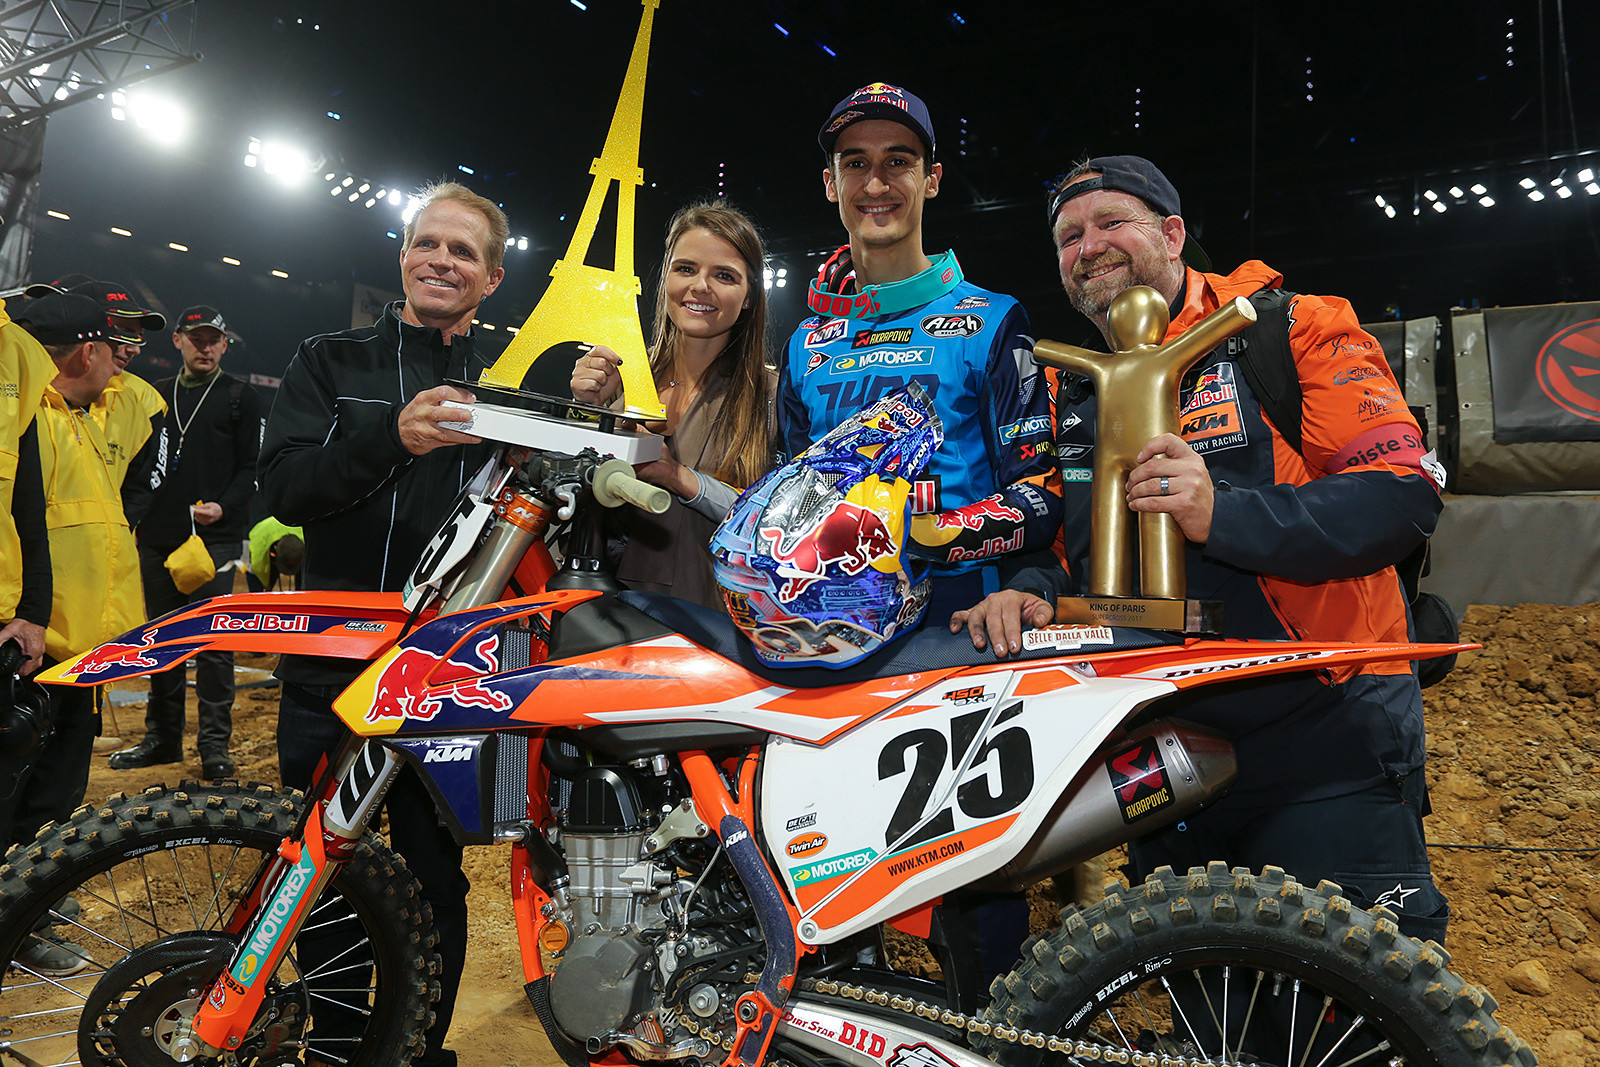 Team Musquin was pretty happy with his weekend's results. From left to right, it's Aldon Baker, Mathilde Musquin; and on the other side of Marvin it's his mechanic, Frankie Latham.